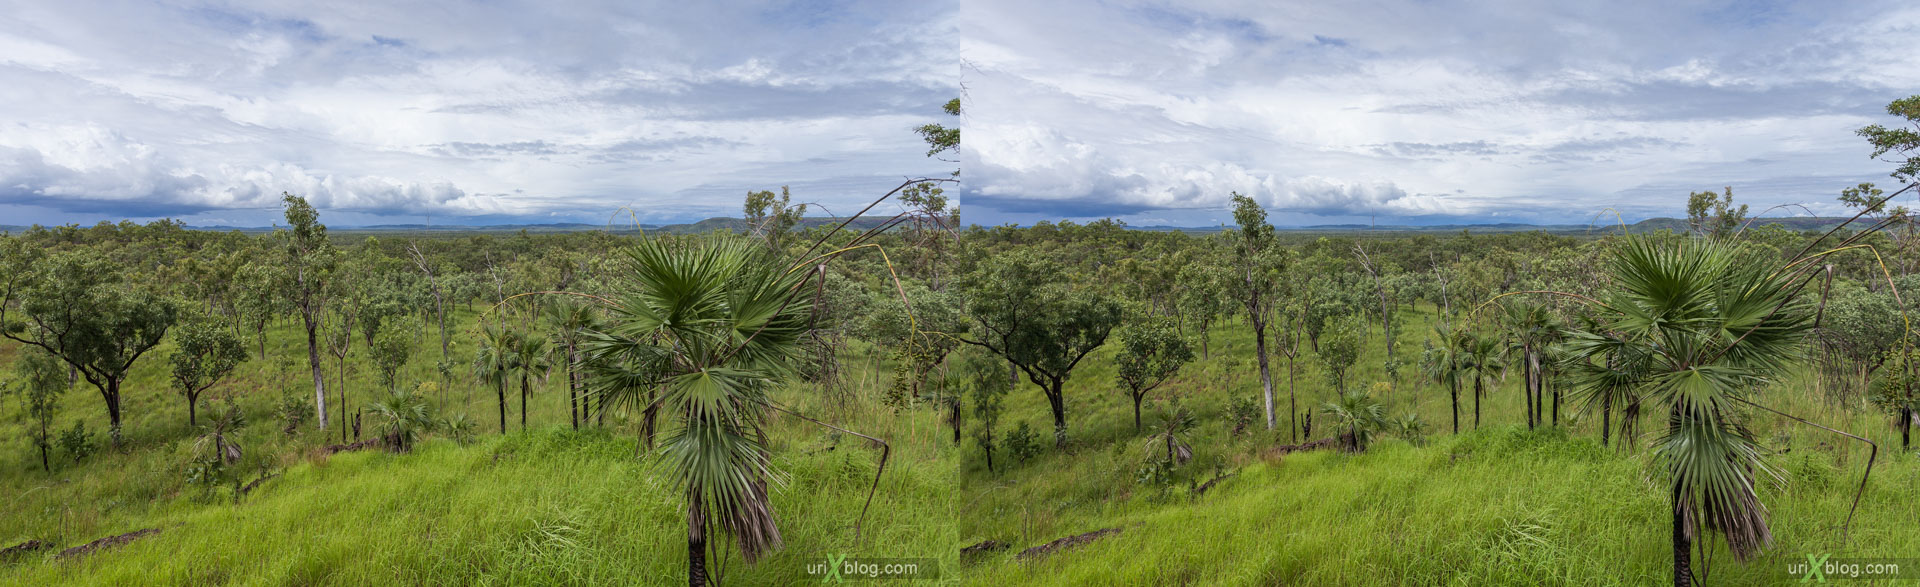 Kakadu National Park, Northern Territory, Australia, 3D, stereo pair, cross-eyed, crossview, cross view stereo pair, stereoscopic, 2011